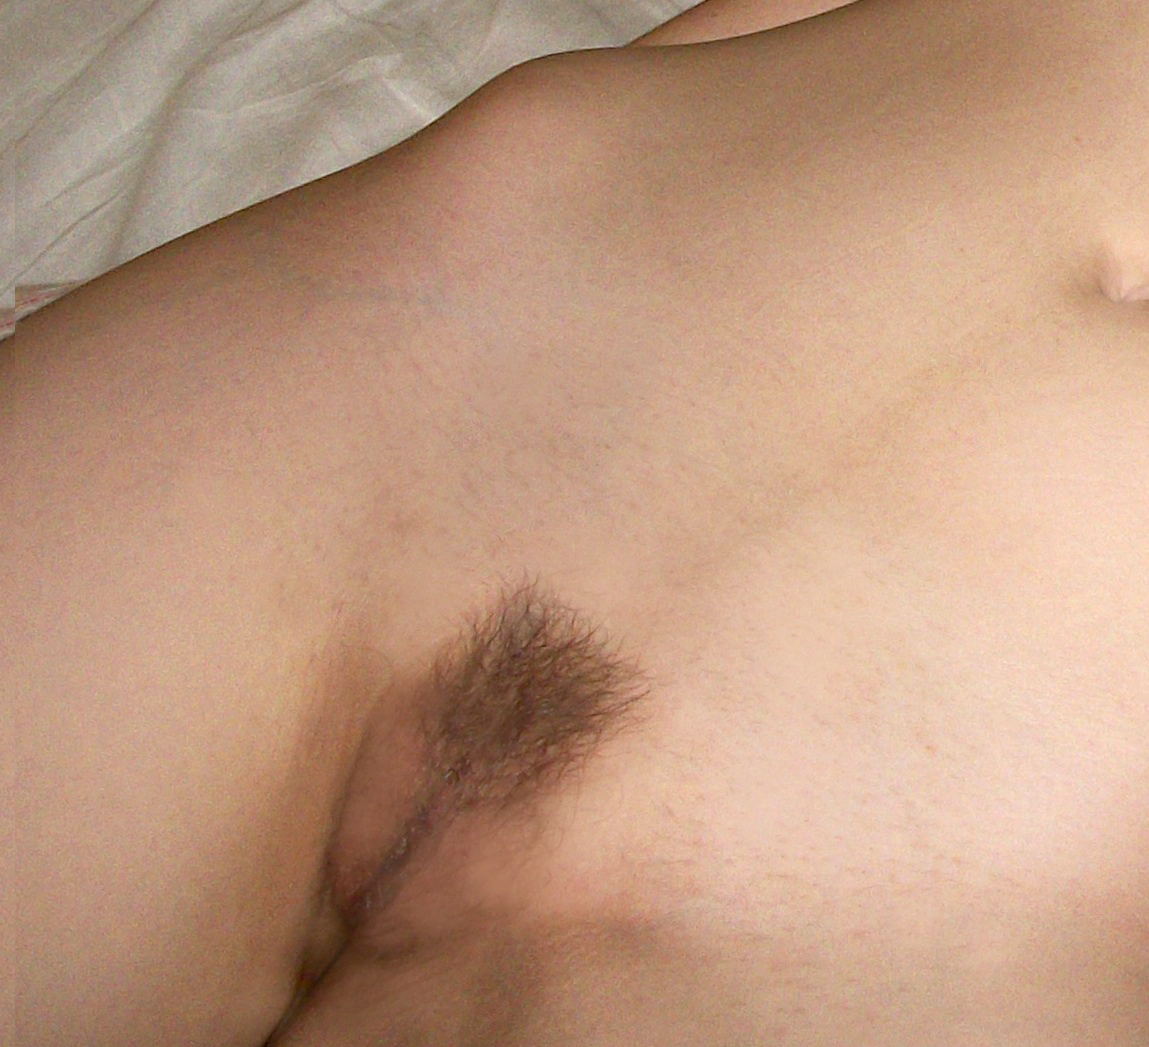 female pubes nude photo